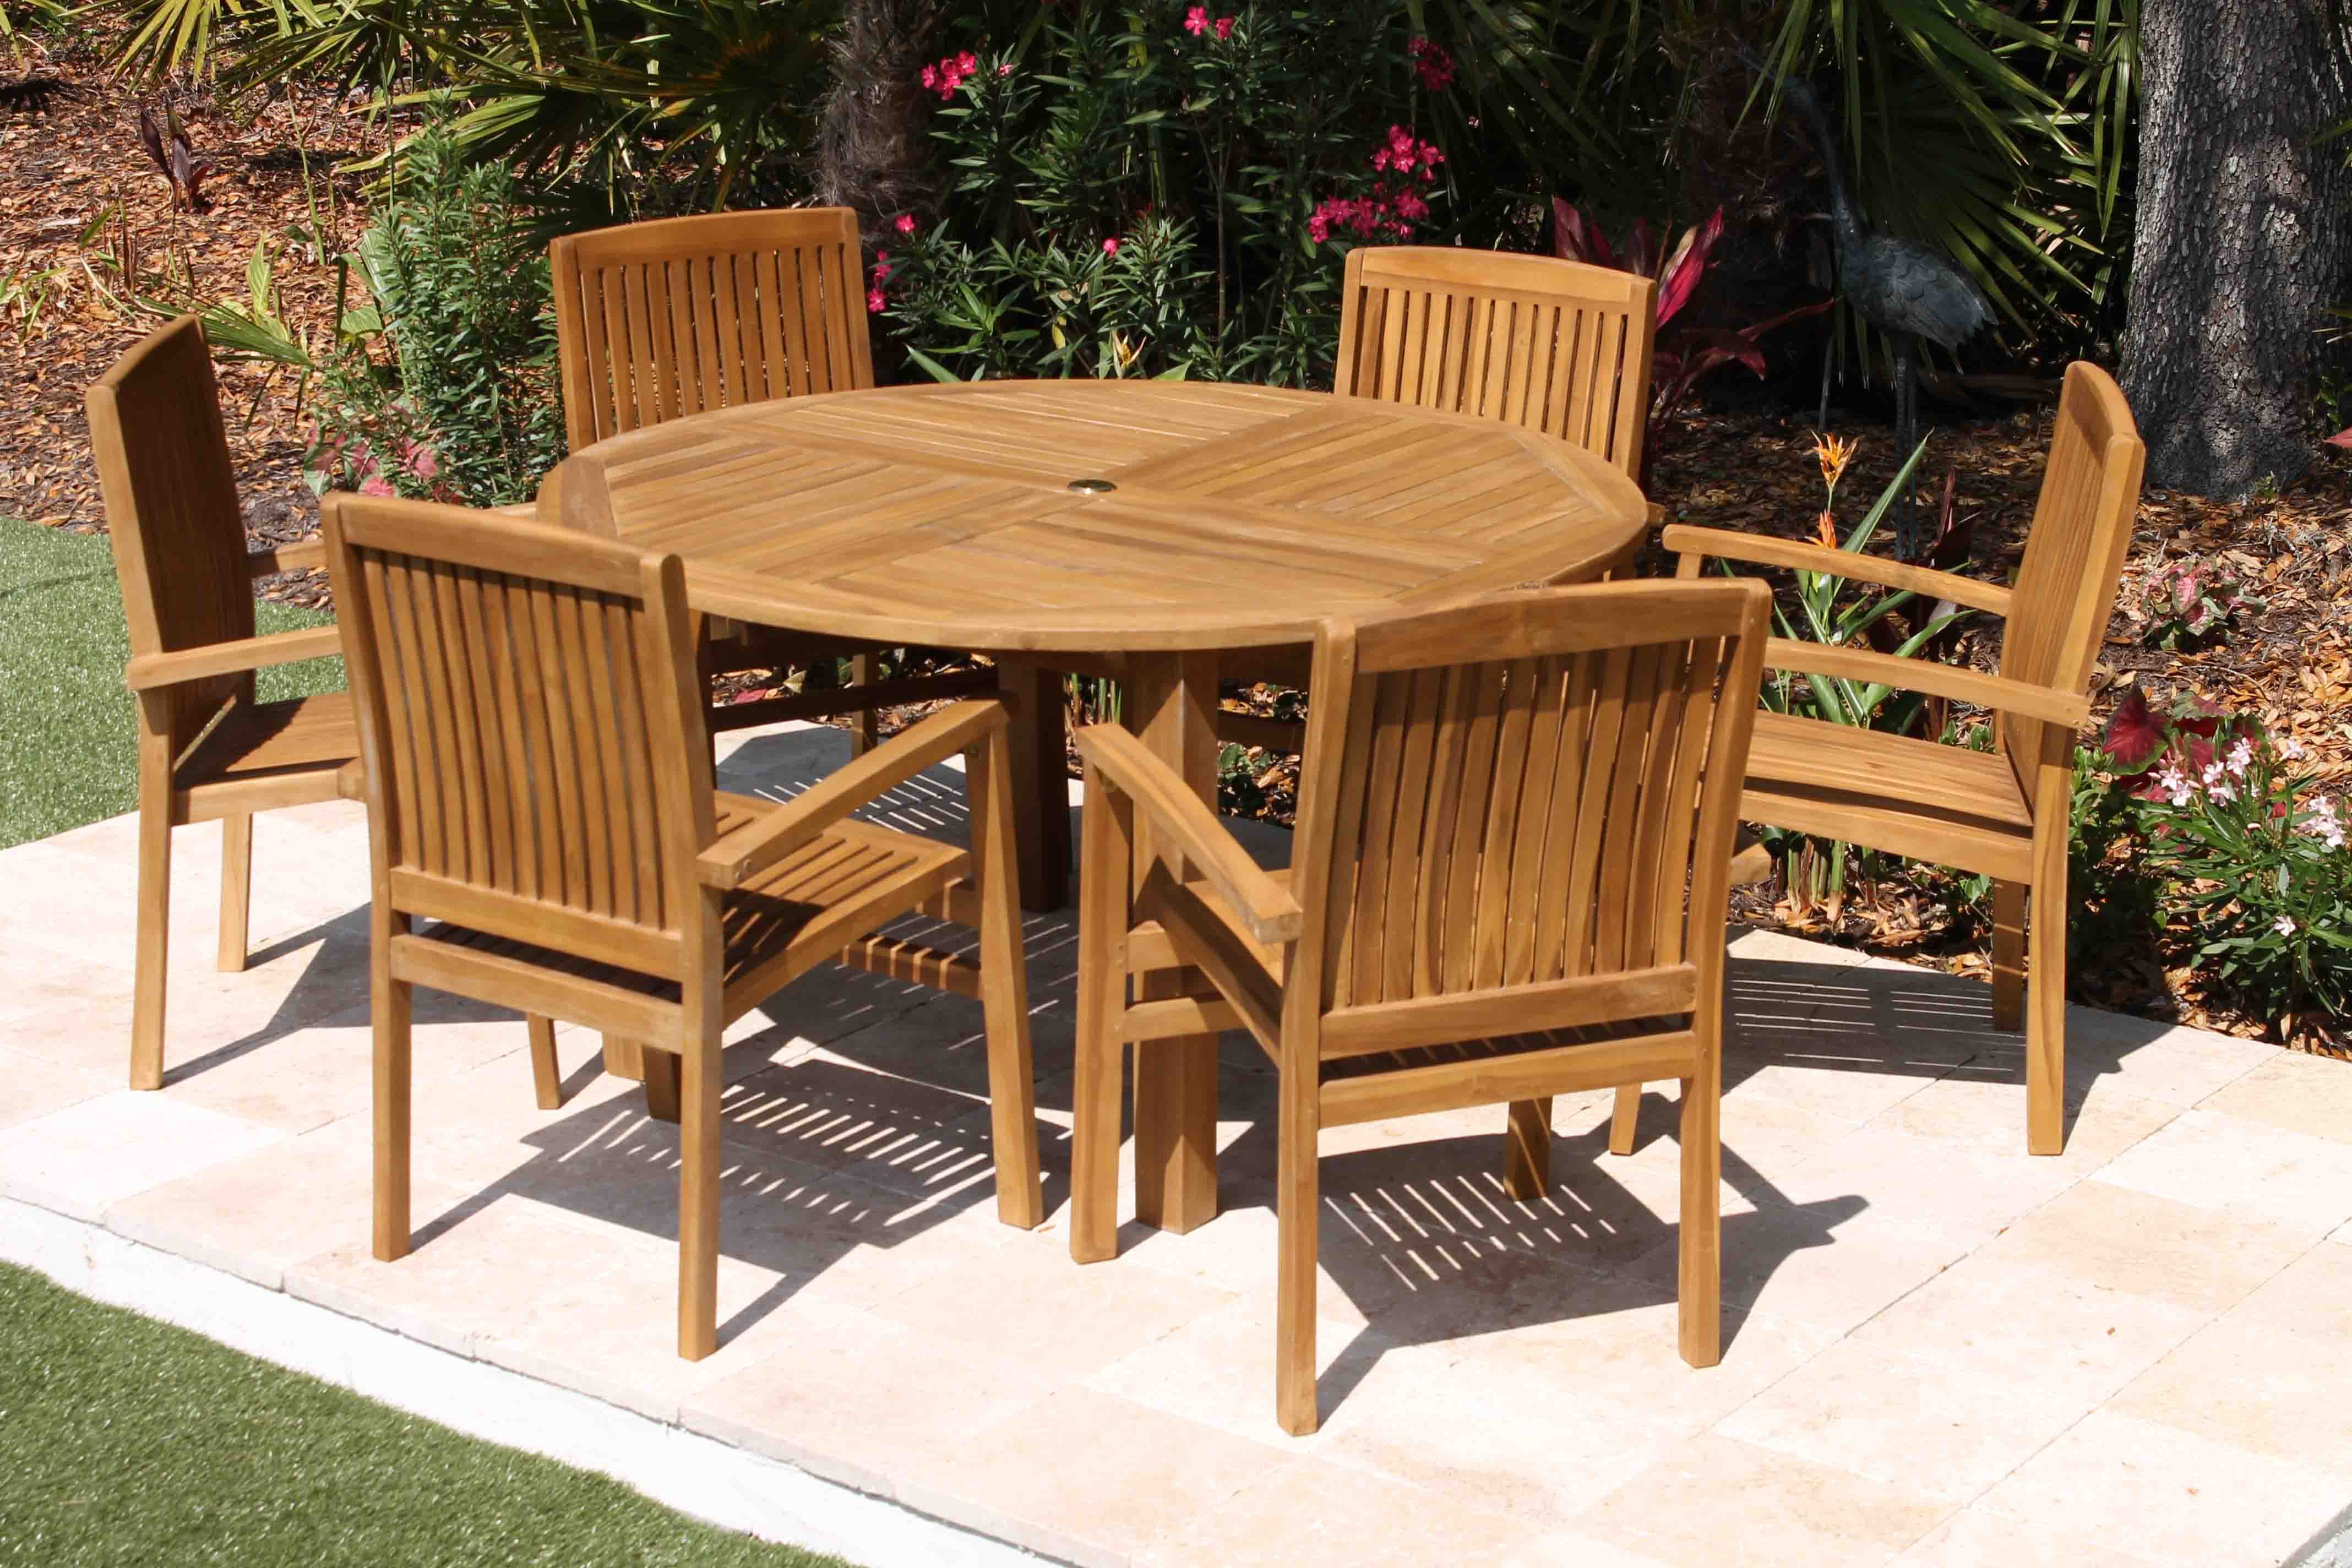 Teak Chair sale 56in round table & 6 pacific chair teak set | oceanic teak